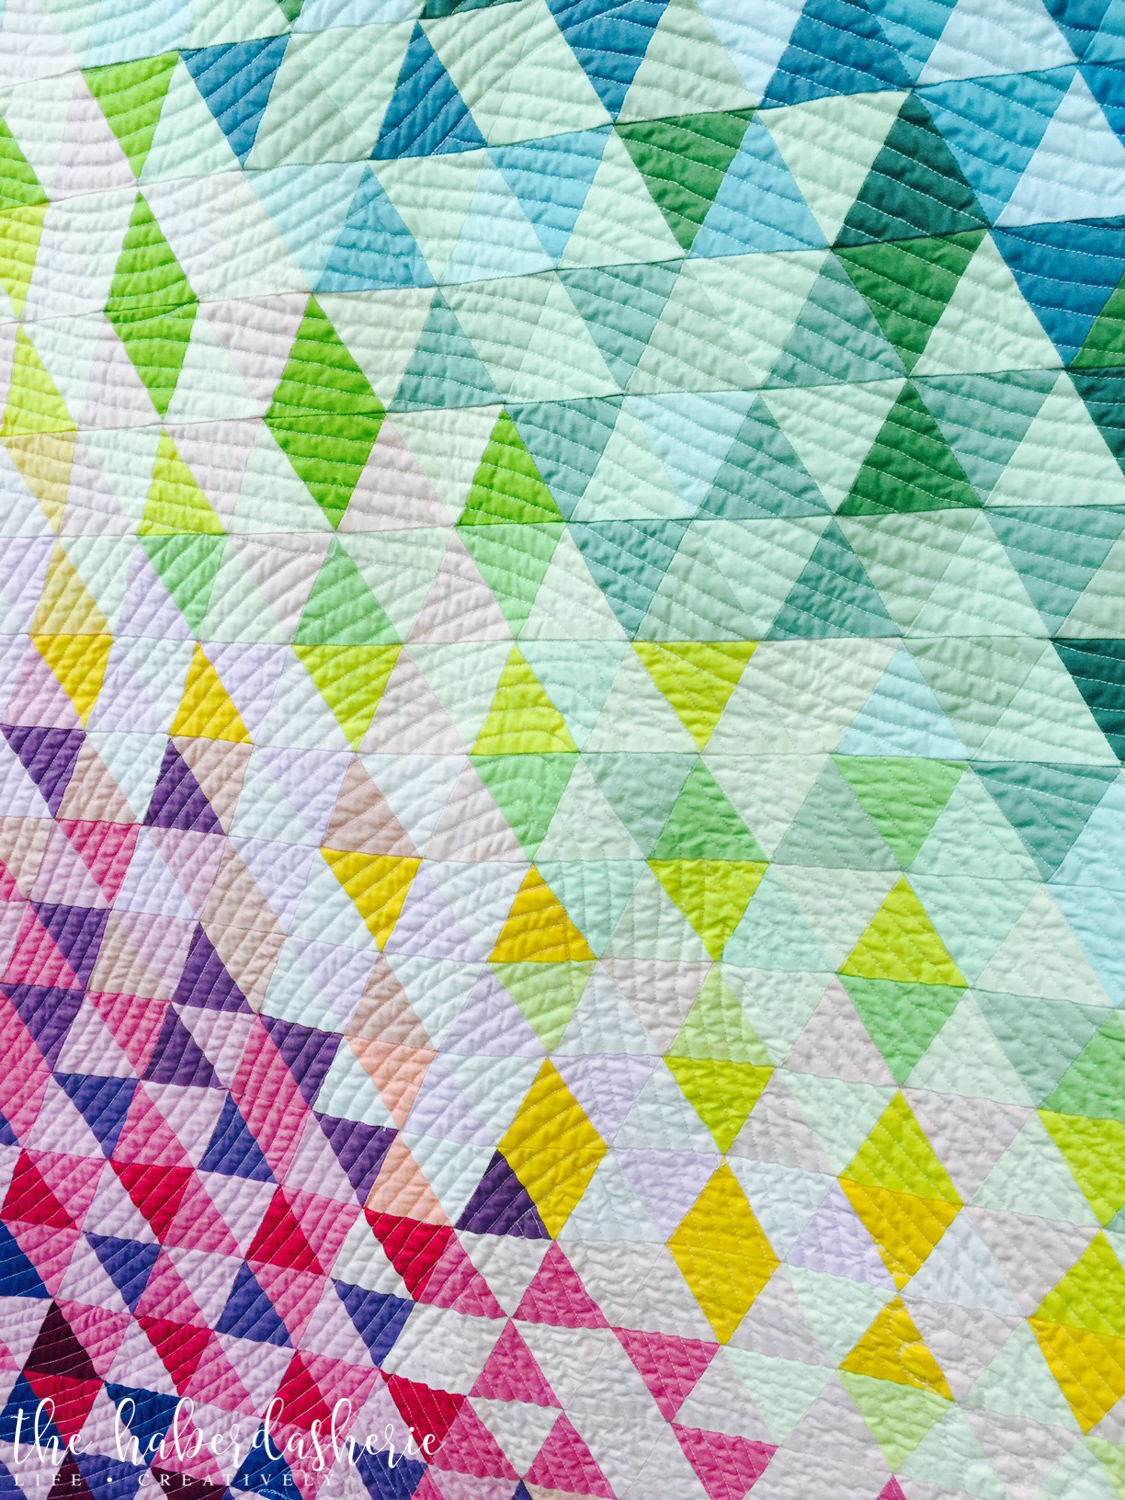 Watermarked the haberdasherie quiltCon (28 of 39).jpg